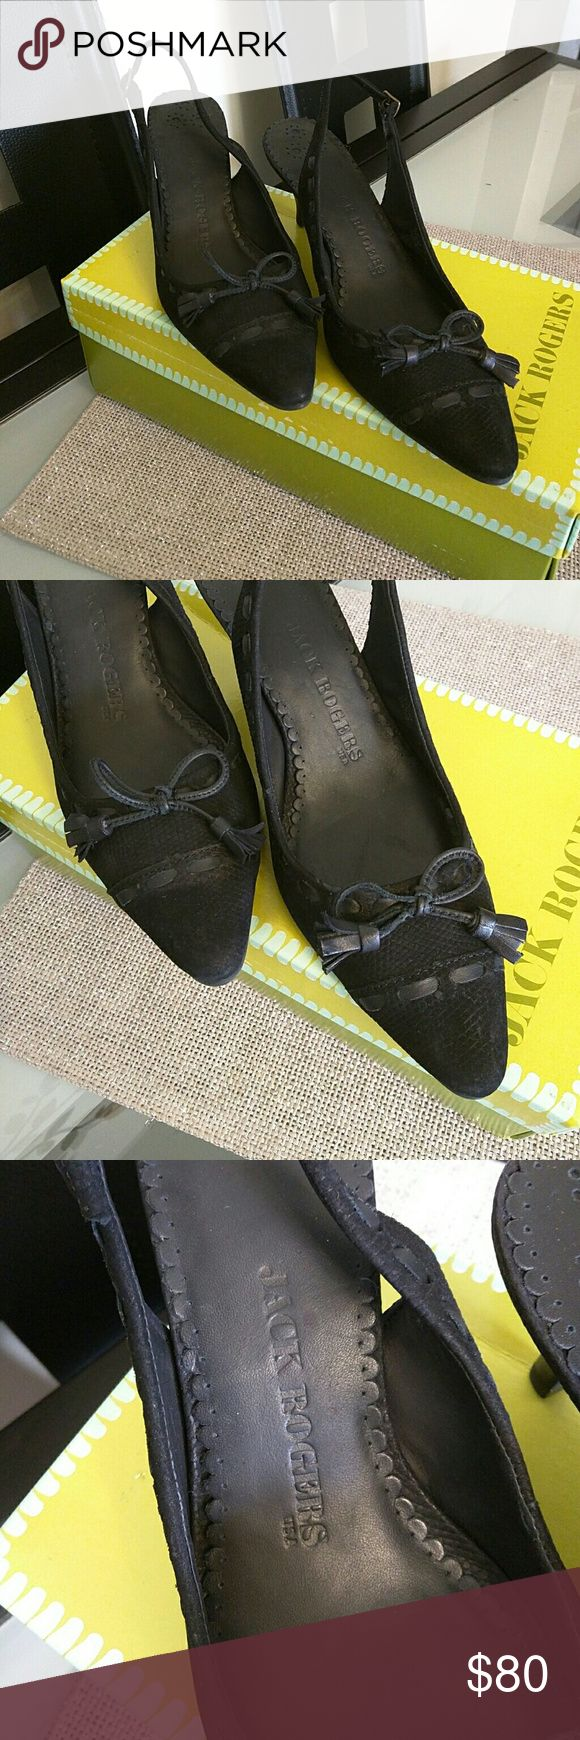 Jack Rogers Shoes. New, never been worn. Calf leather. Gorgeous! Jack Rogers Shoes Heels